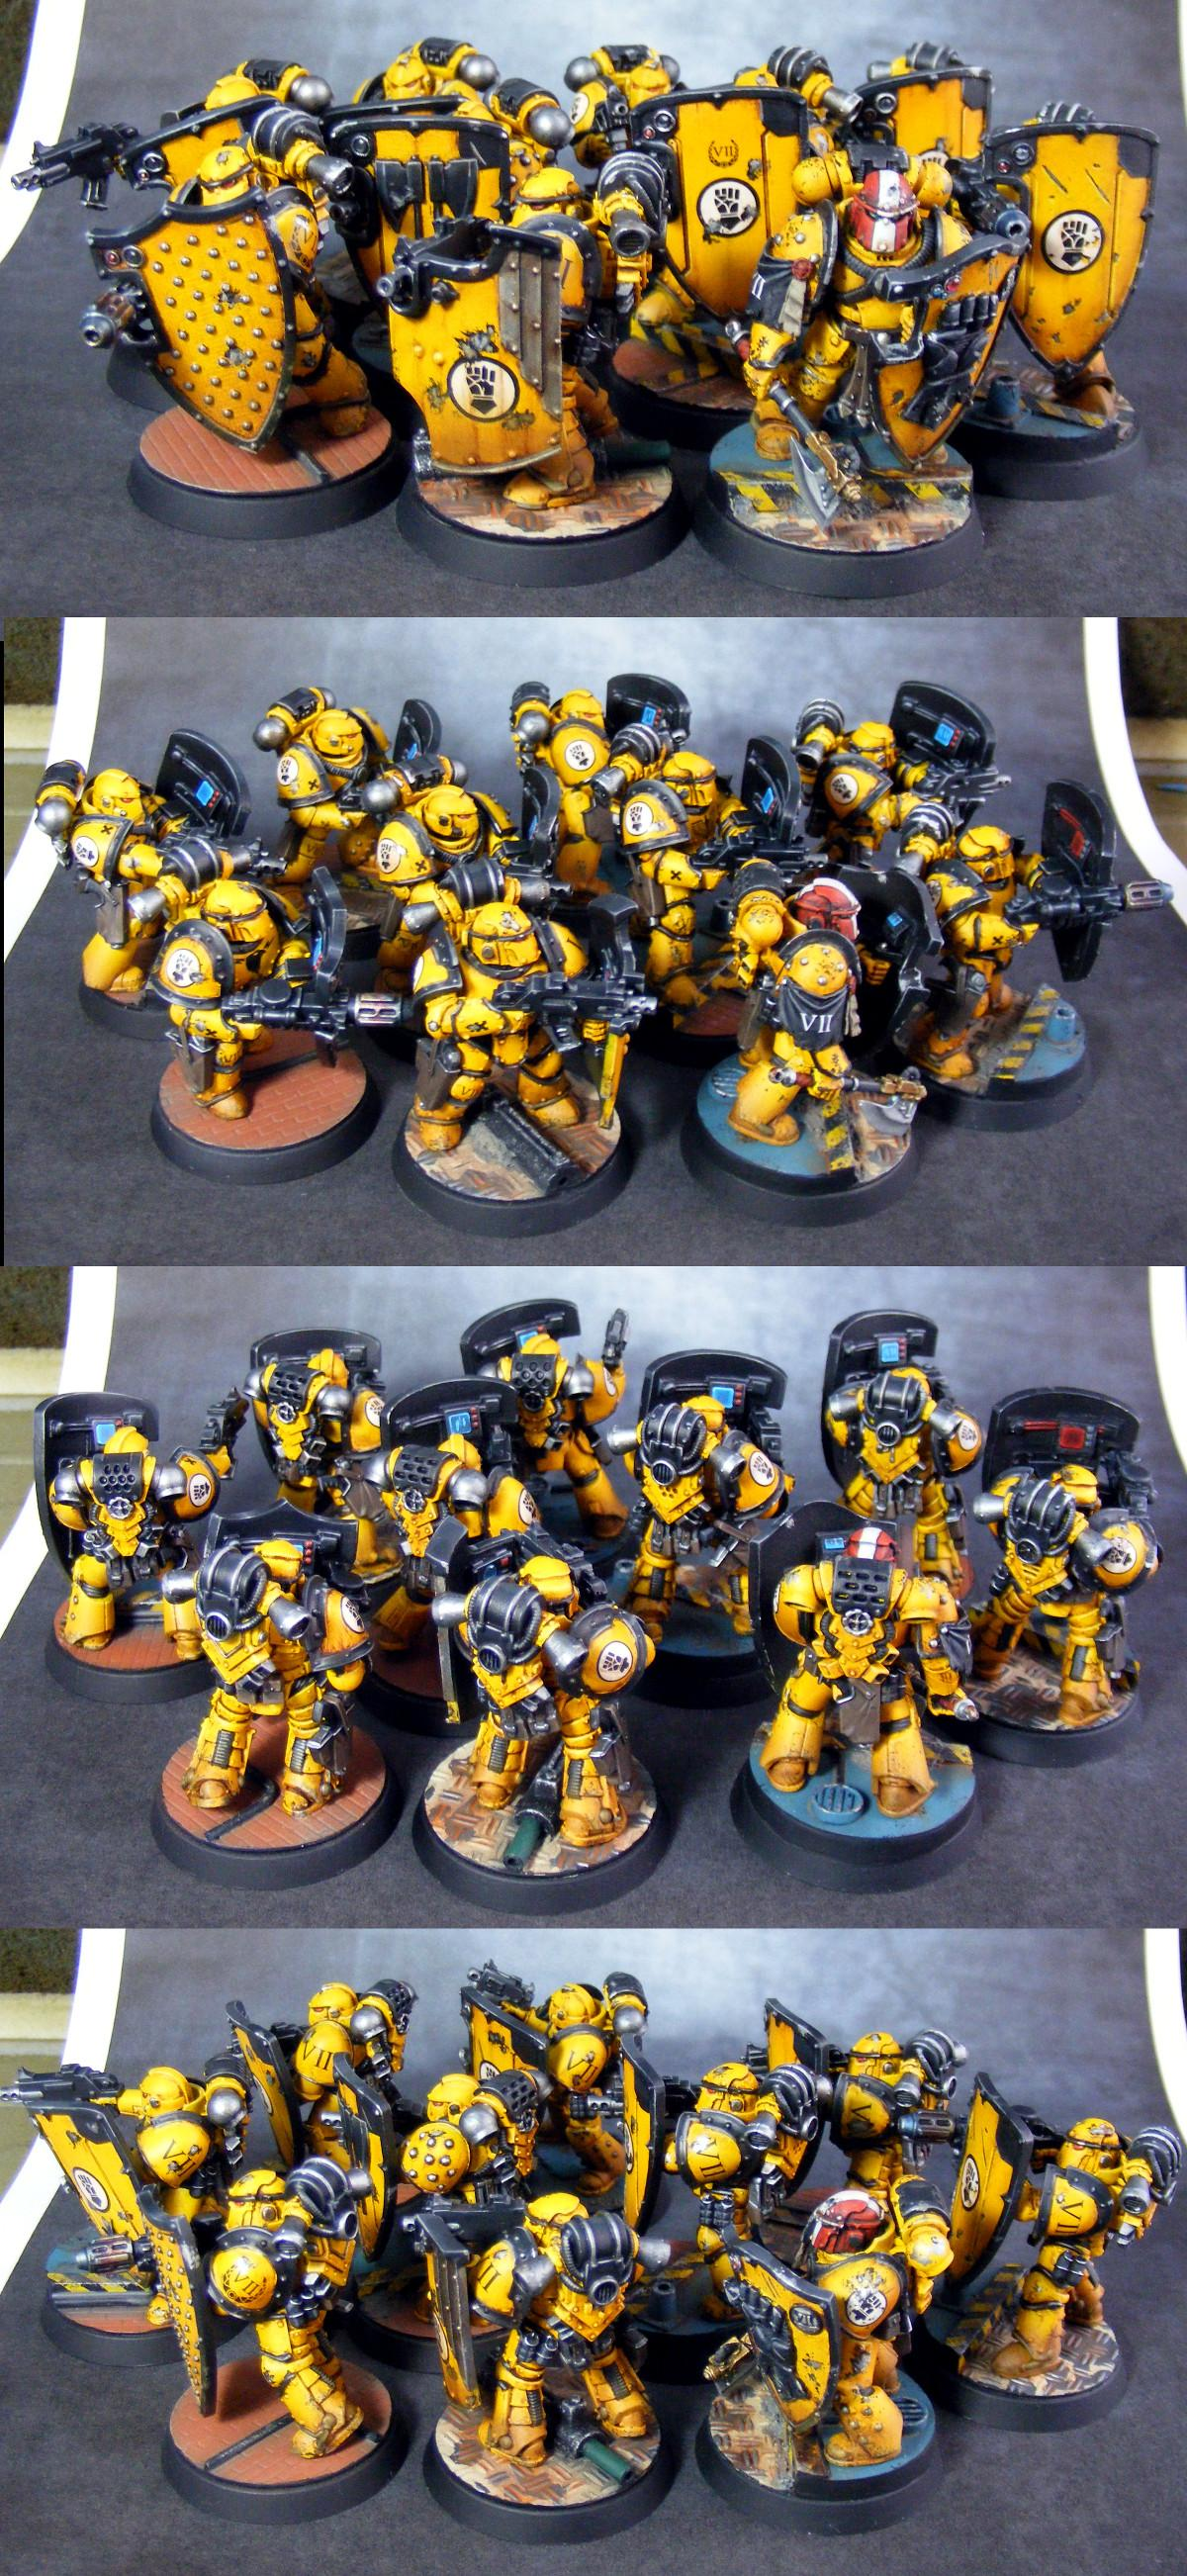 Horus Heresy, Imperial Fists, Space Marines